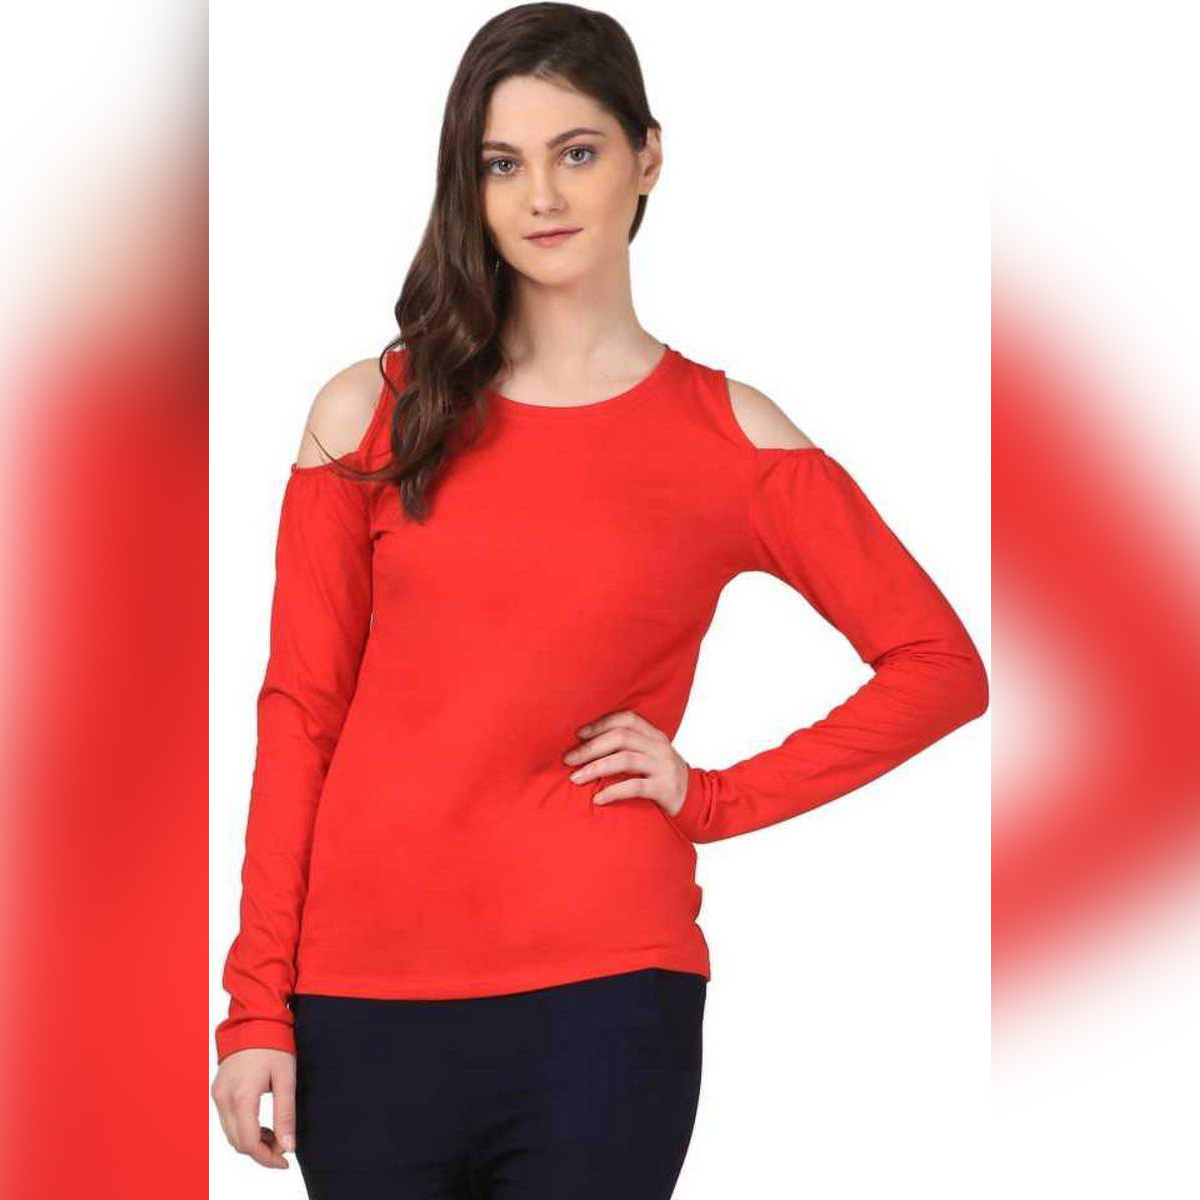 N'noon Casual Full Sleeves Stylish Cold Shoulder T-Shirt Tshirt Shirt Top For Women For Girls